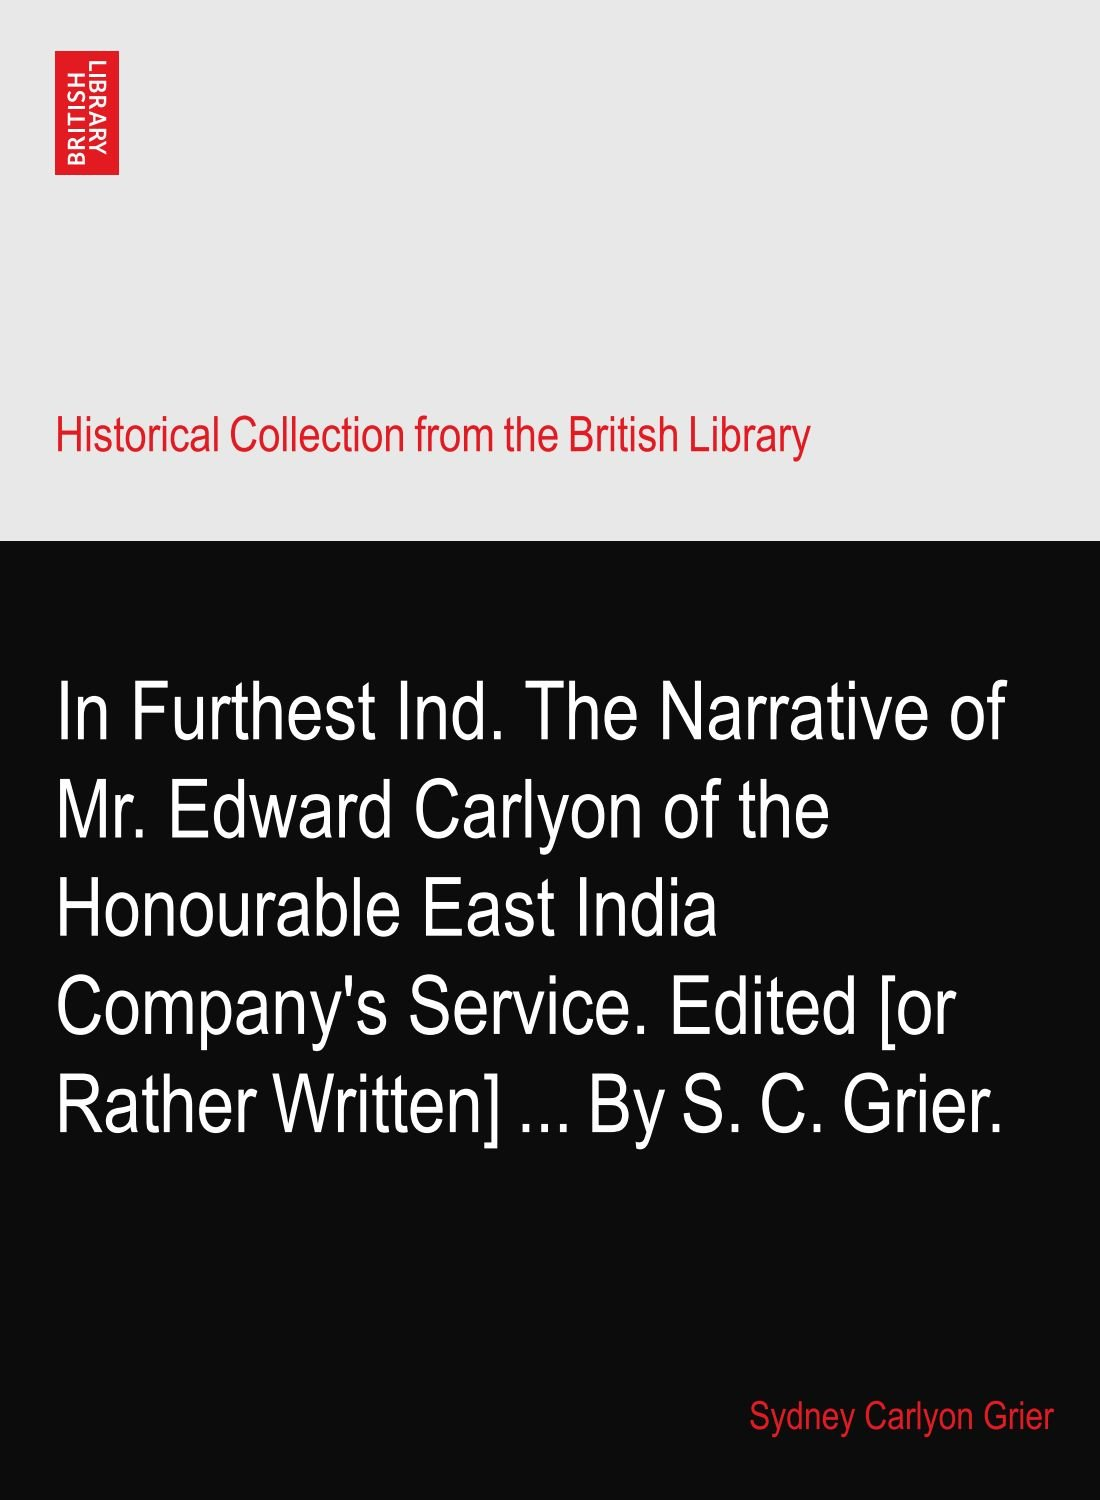 Download In Furthest Ind. The Narrative of Mr. Edward Carlyon of the Honourable East India Company's Service. Edited [or Rather Written] By S. C. Grier. ebook